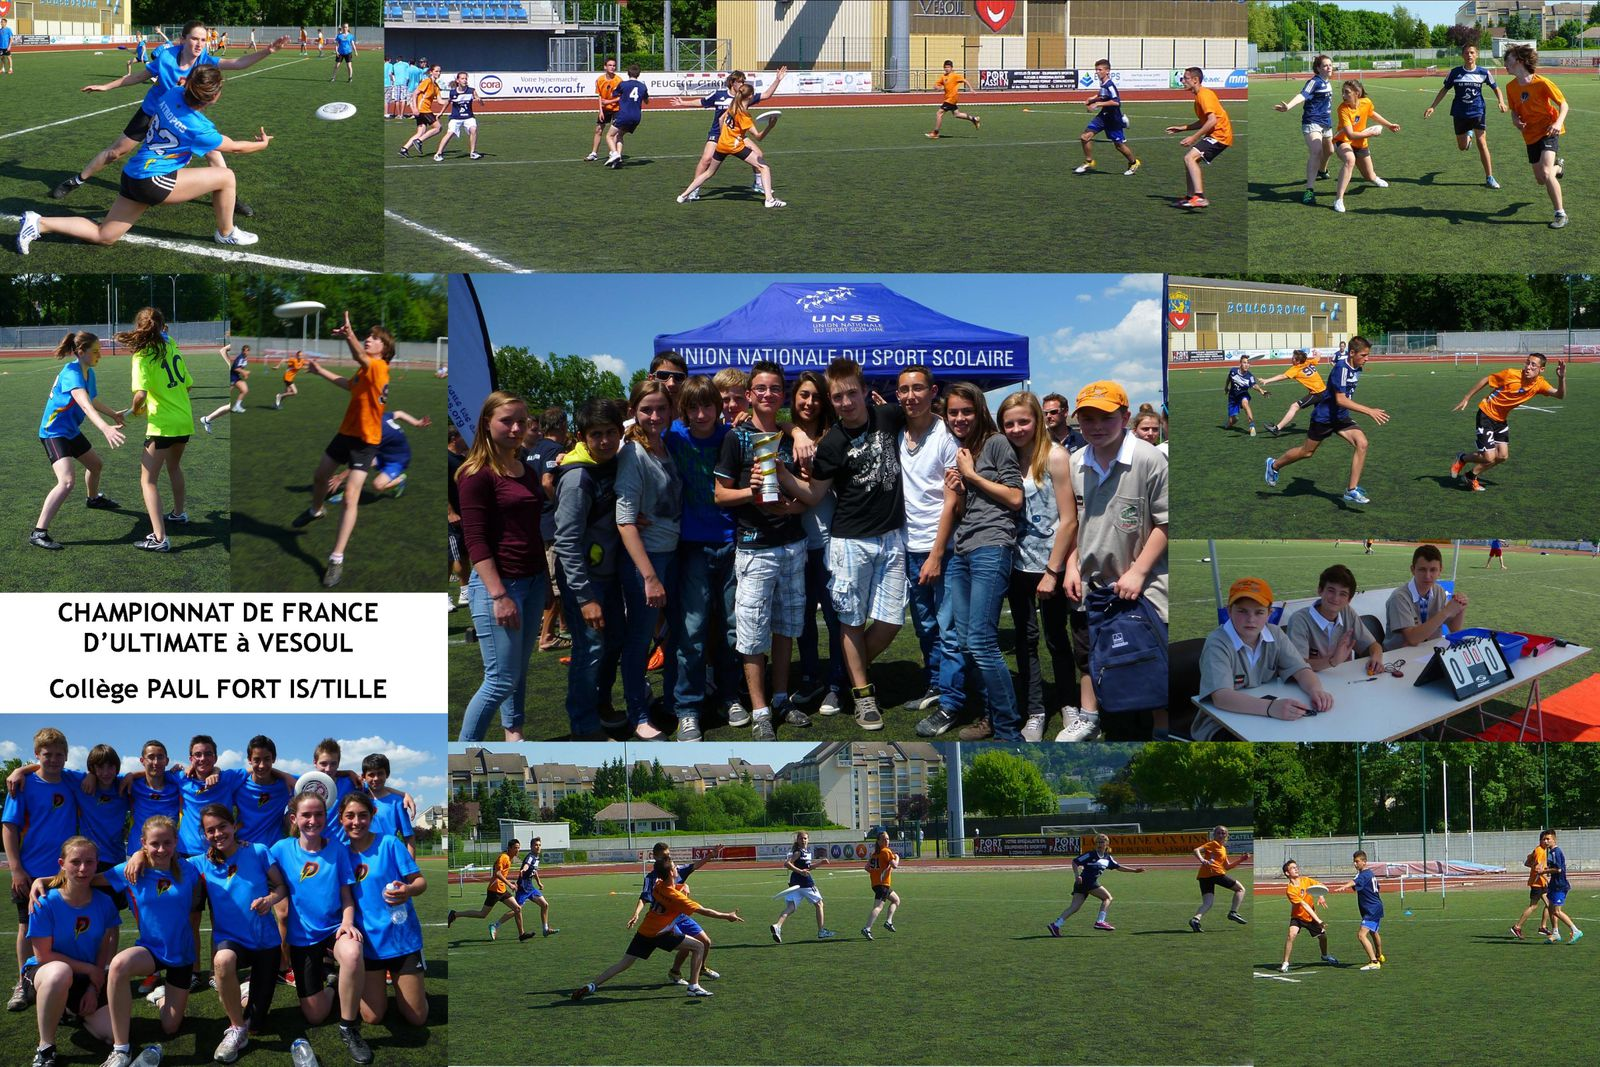 Championnat de France d'Ultimate Frisbee 2012/2013